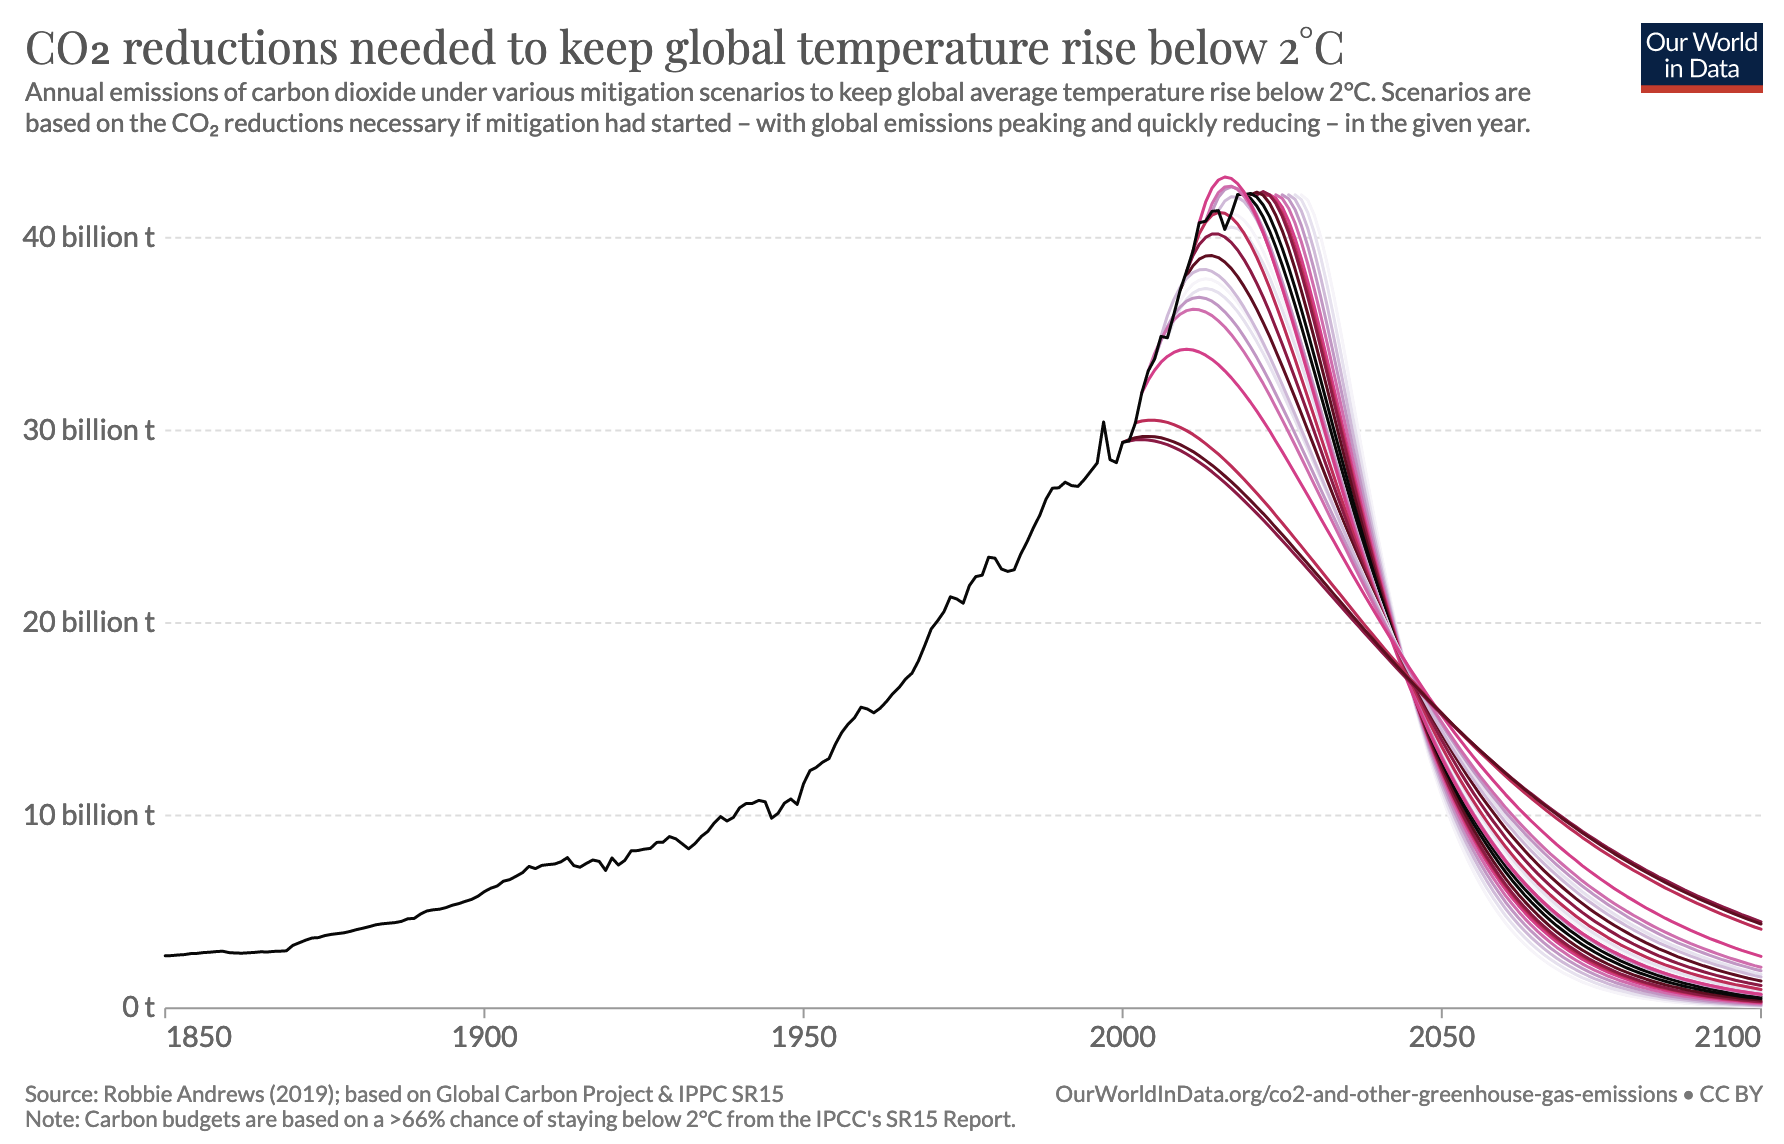 Graph: CO2 reductions needed to keep global temperature rise below 2˚C